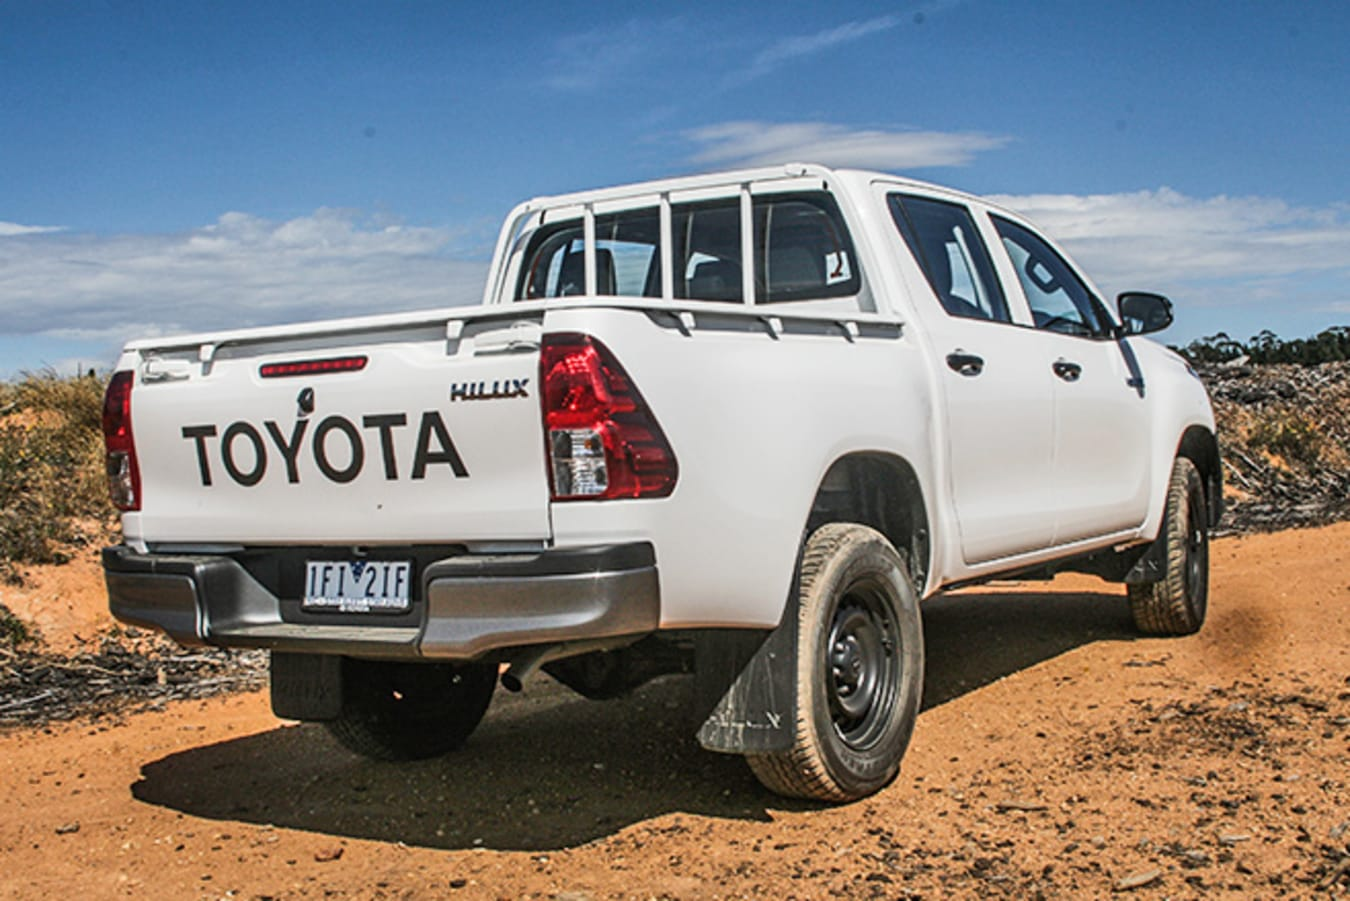 Toyota HiLux 4x4 Workmate side rear